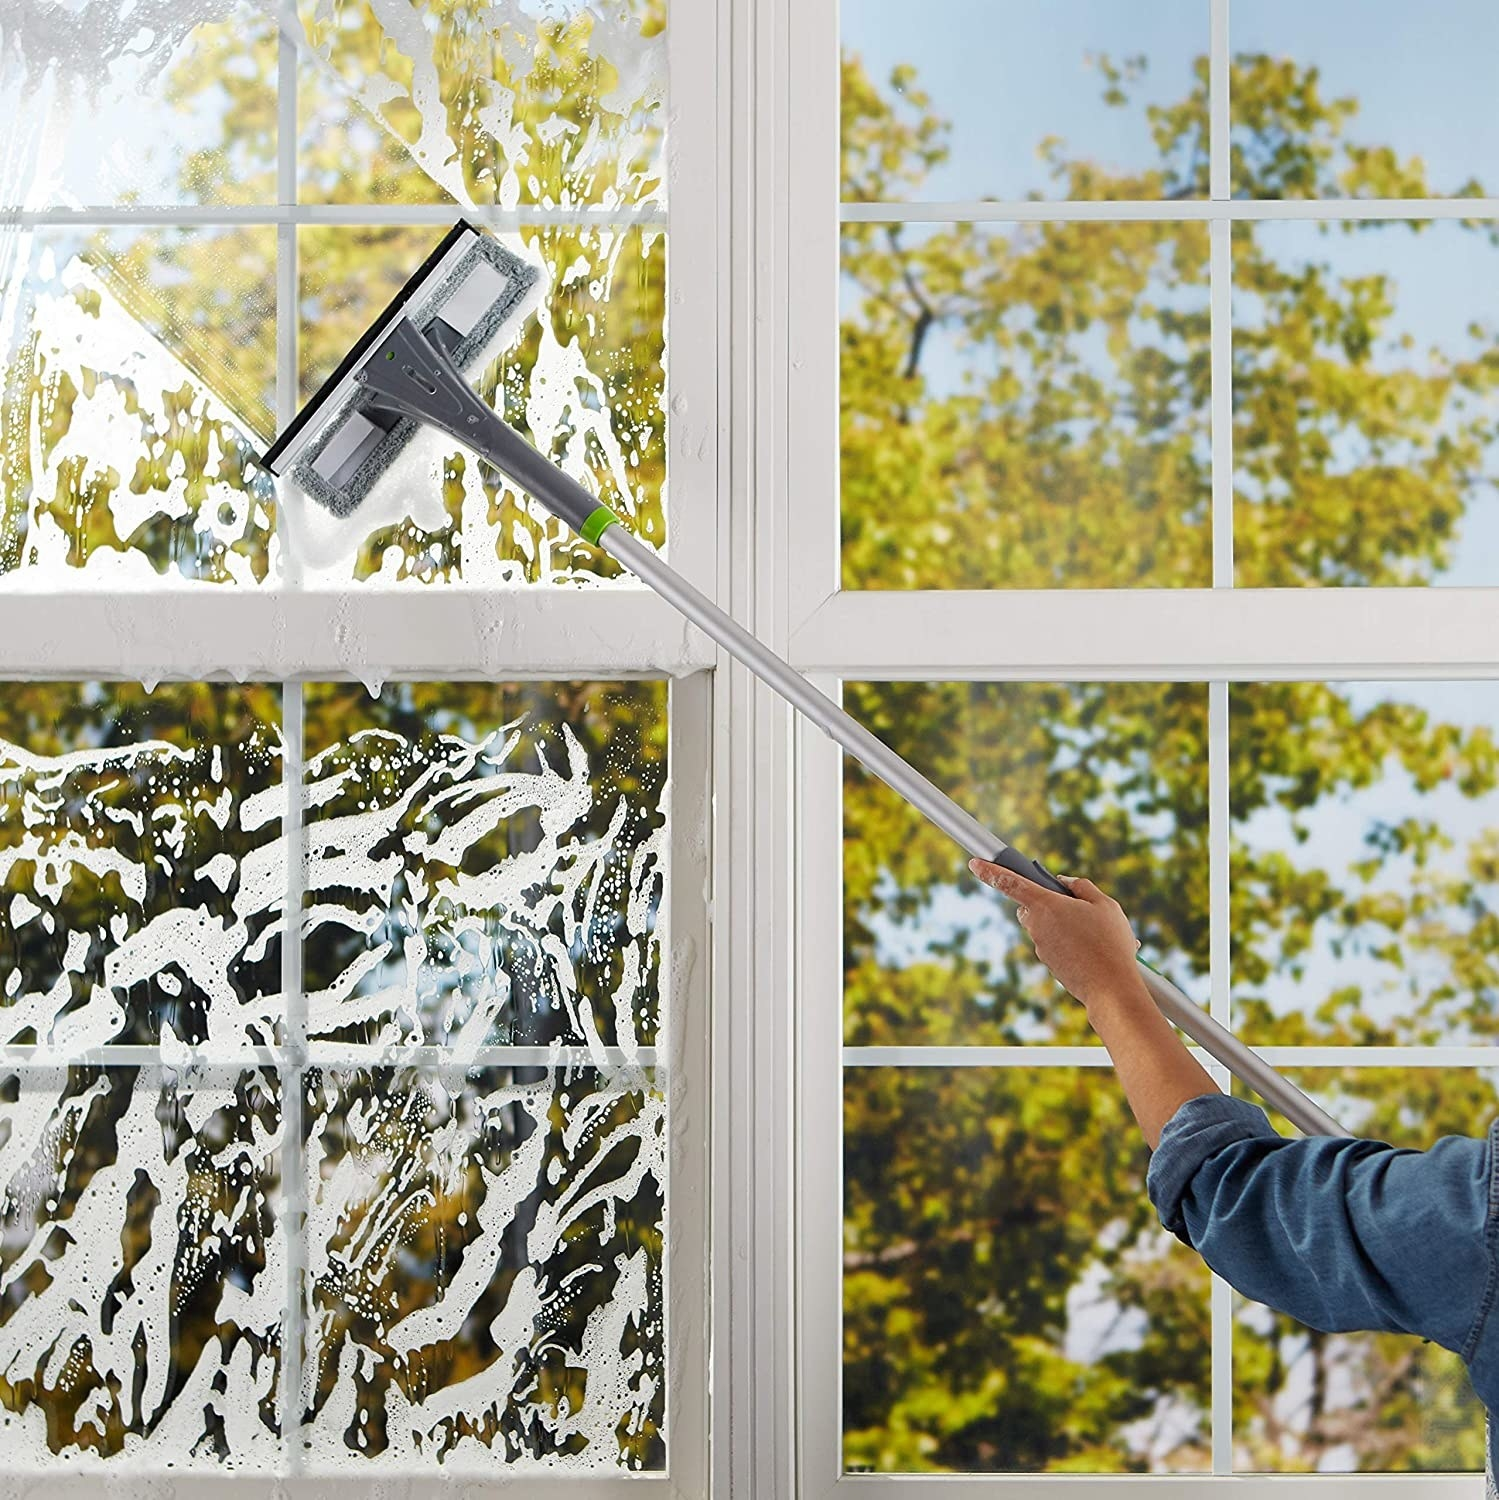 A person using the extendable squeegee to clean windows.